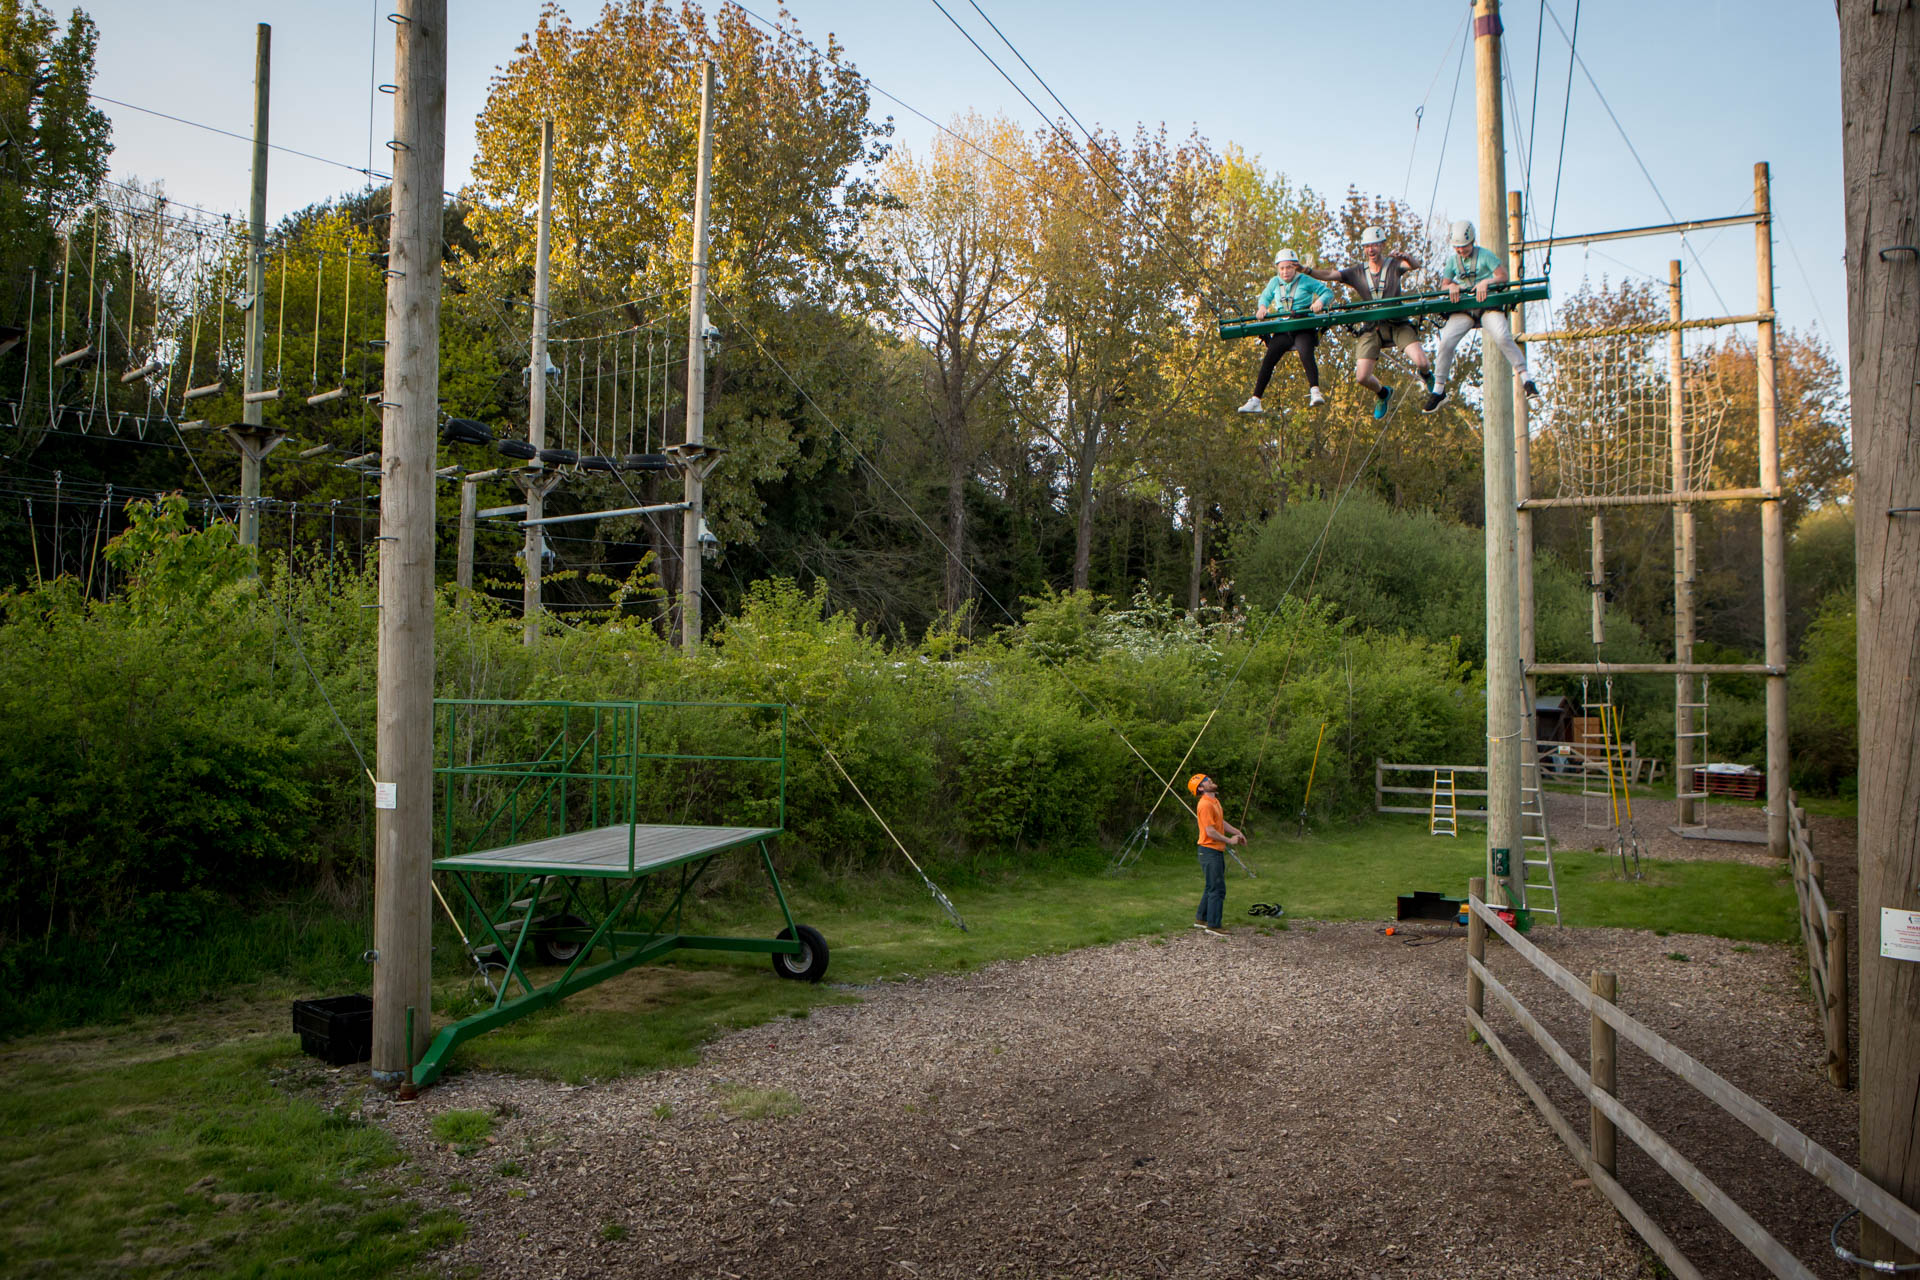 King Swing at Valley Adventure Centr